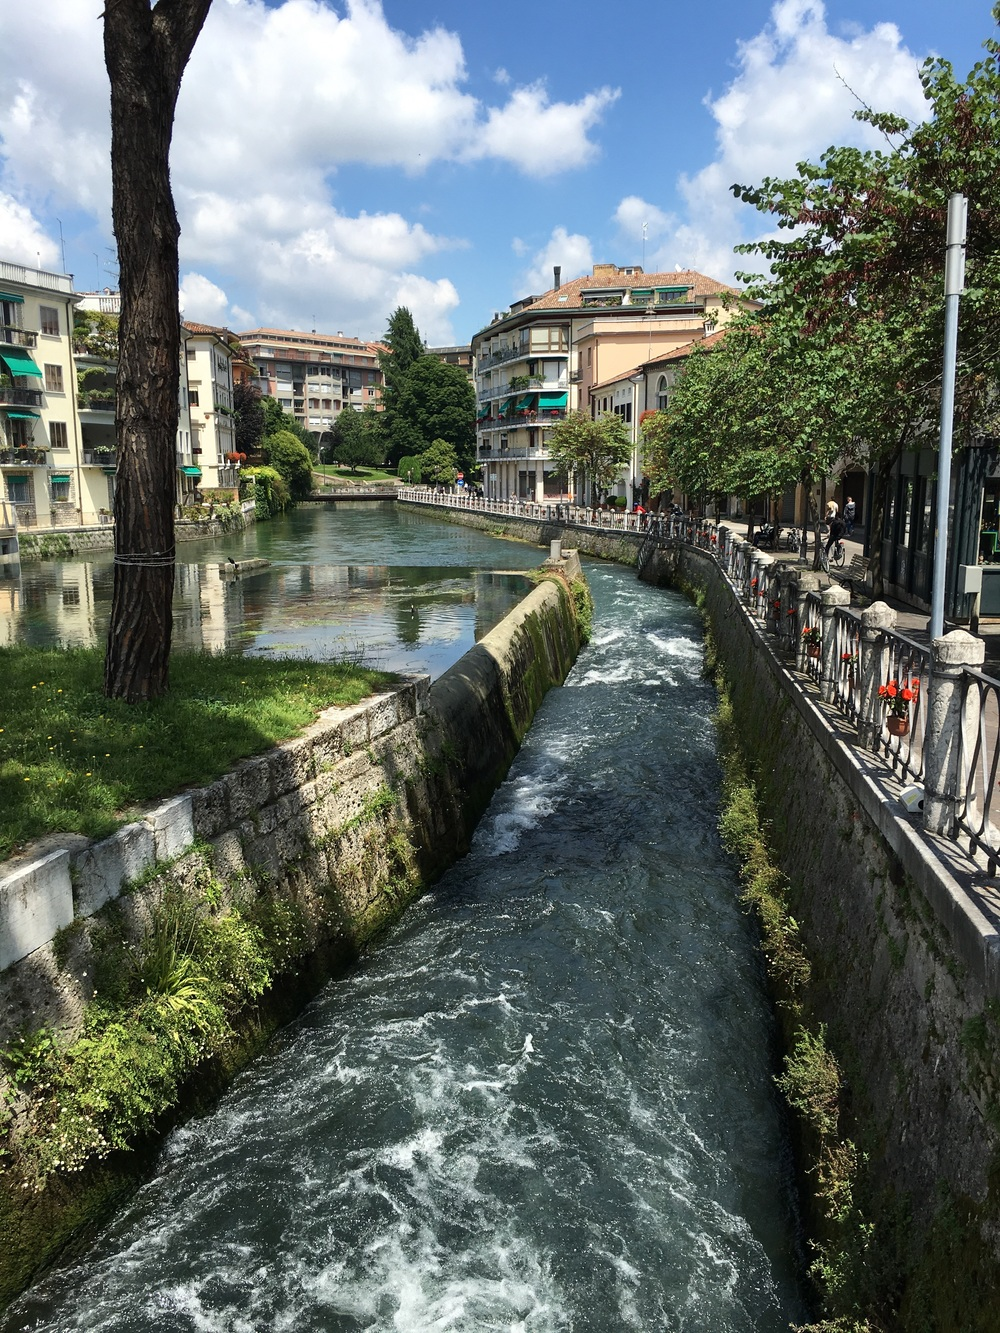 One of the canals in Treviso